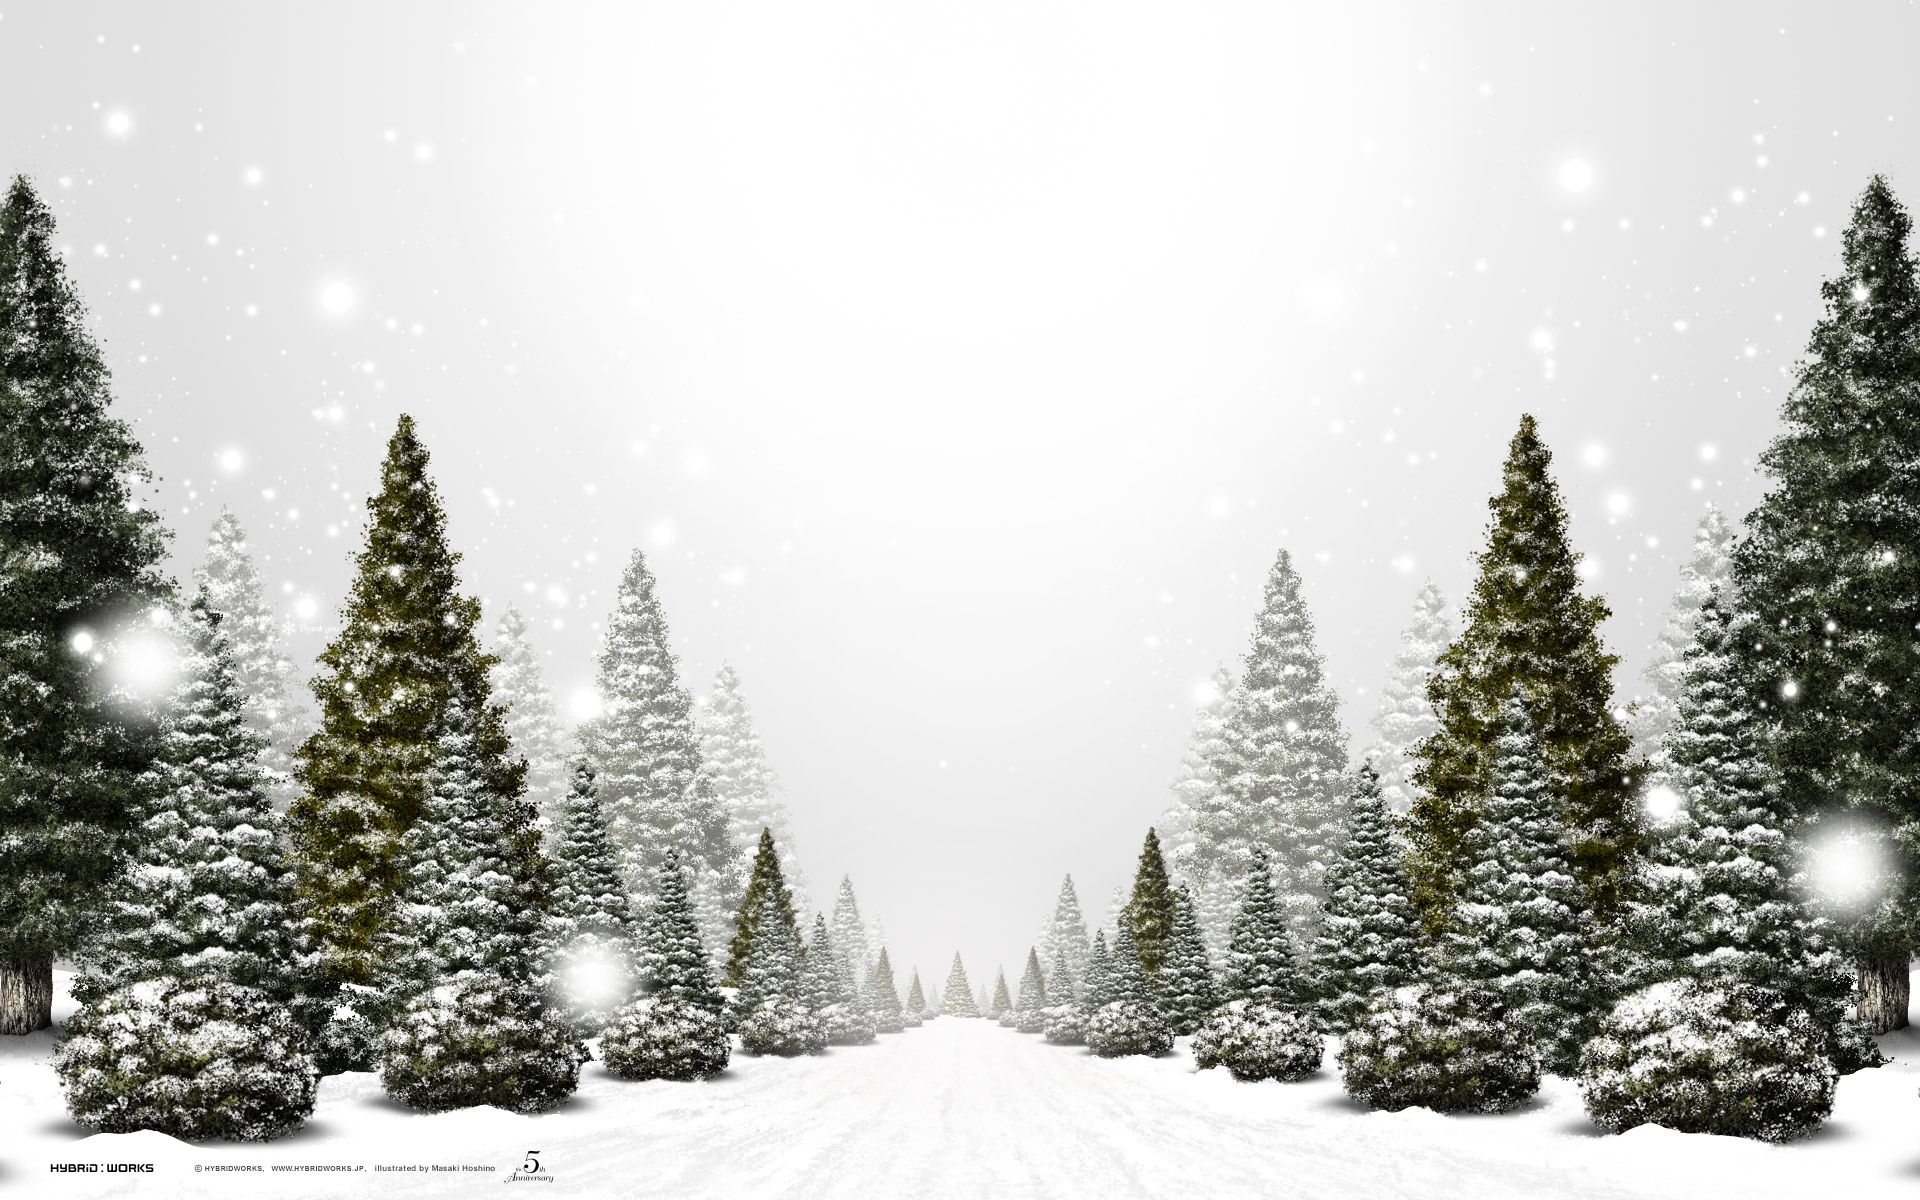 Winter Christmas Wallpaper High Quality Christmas